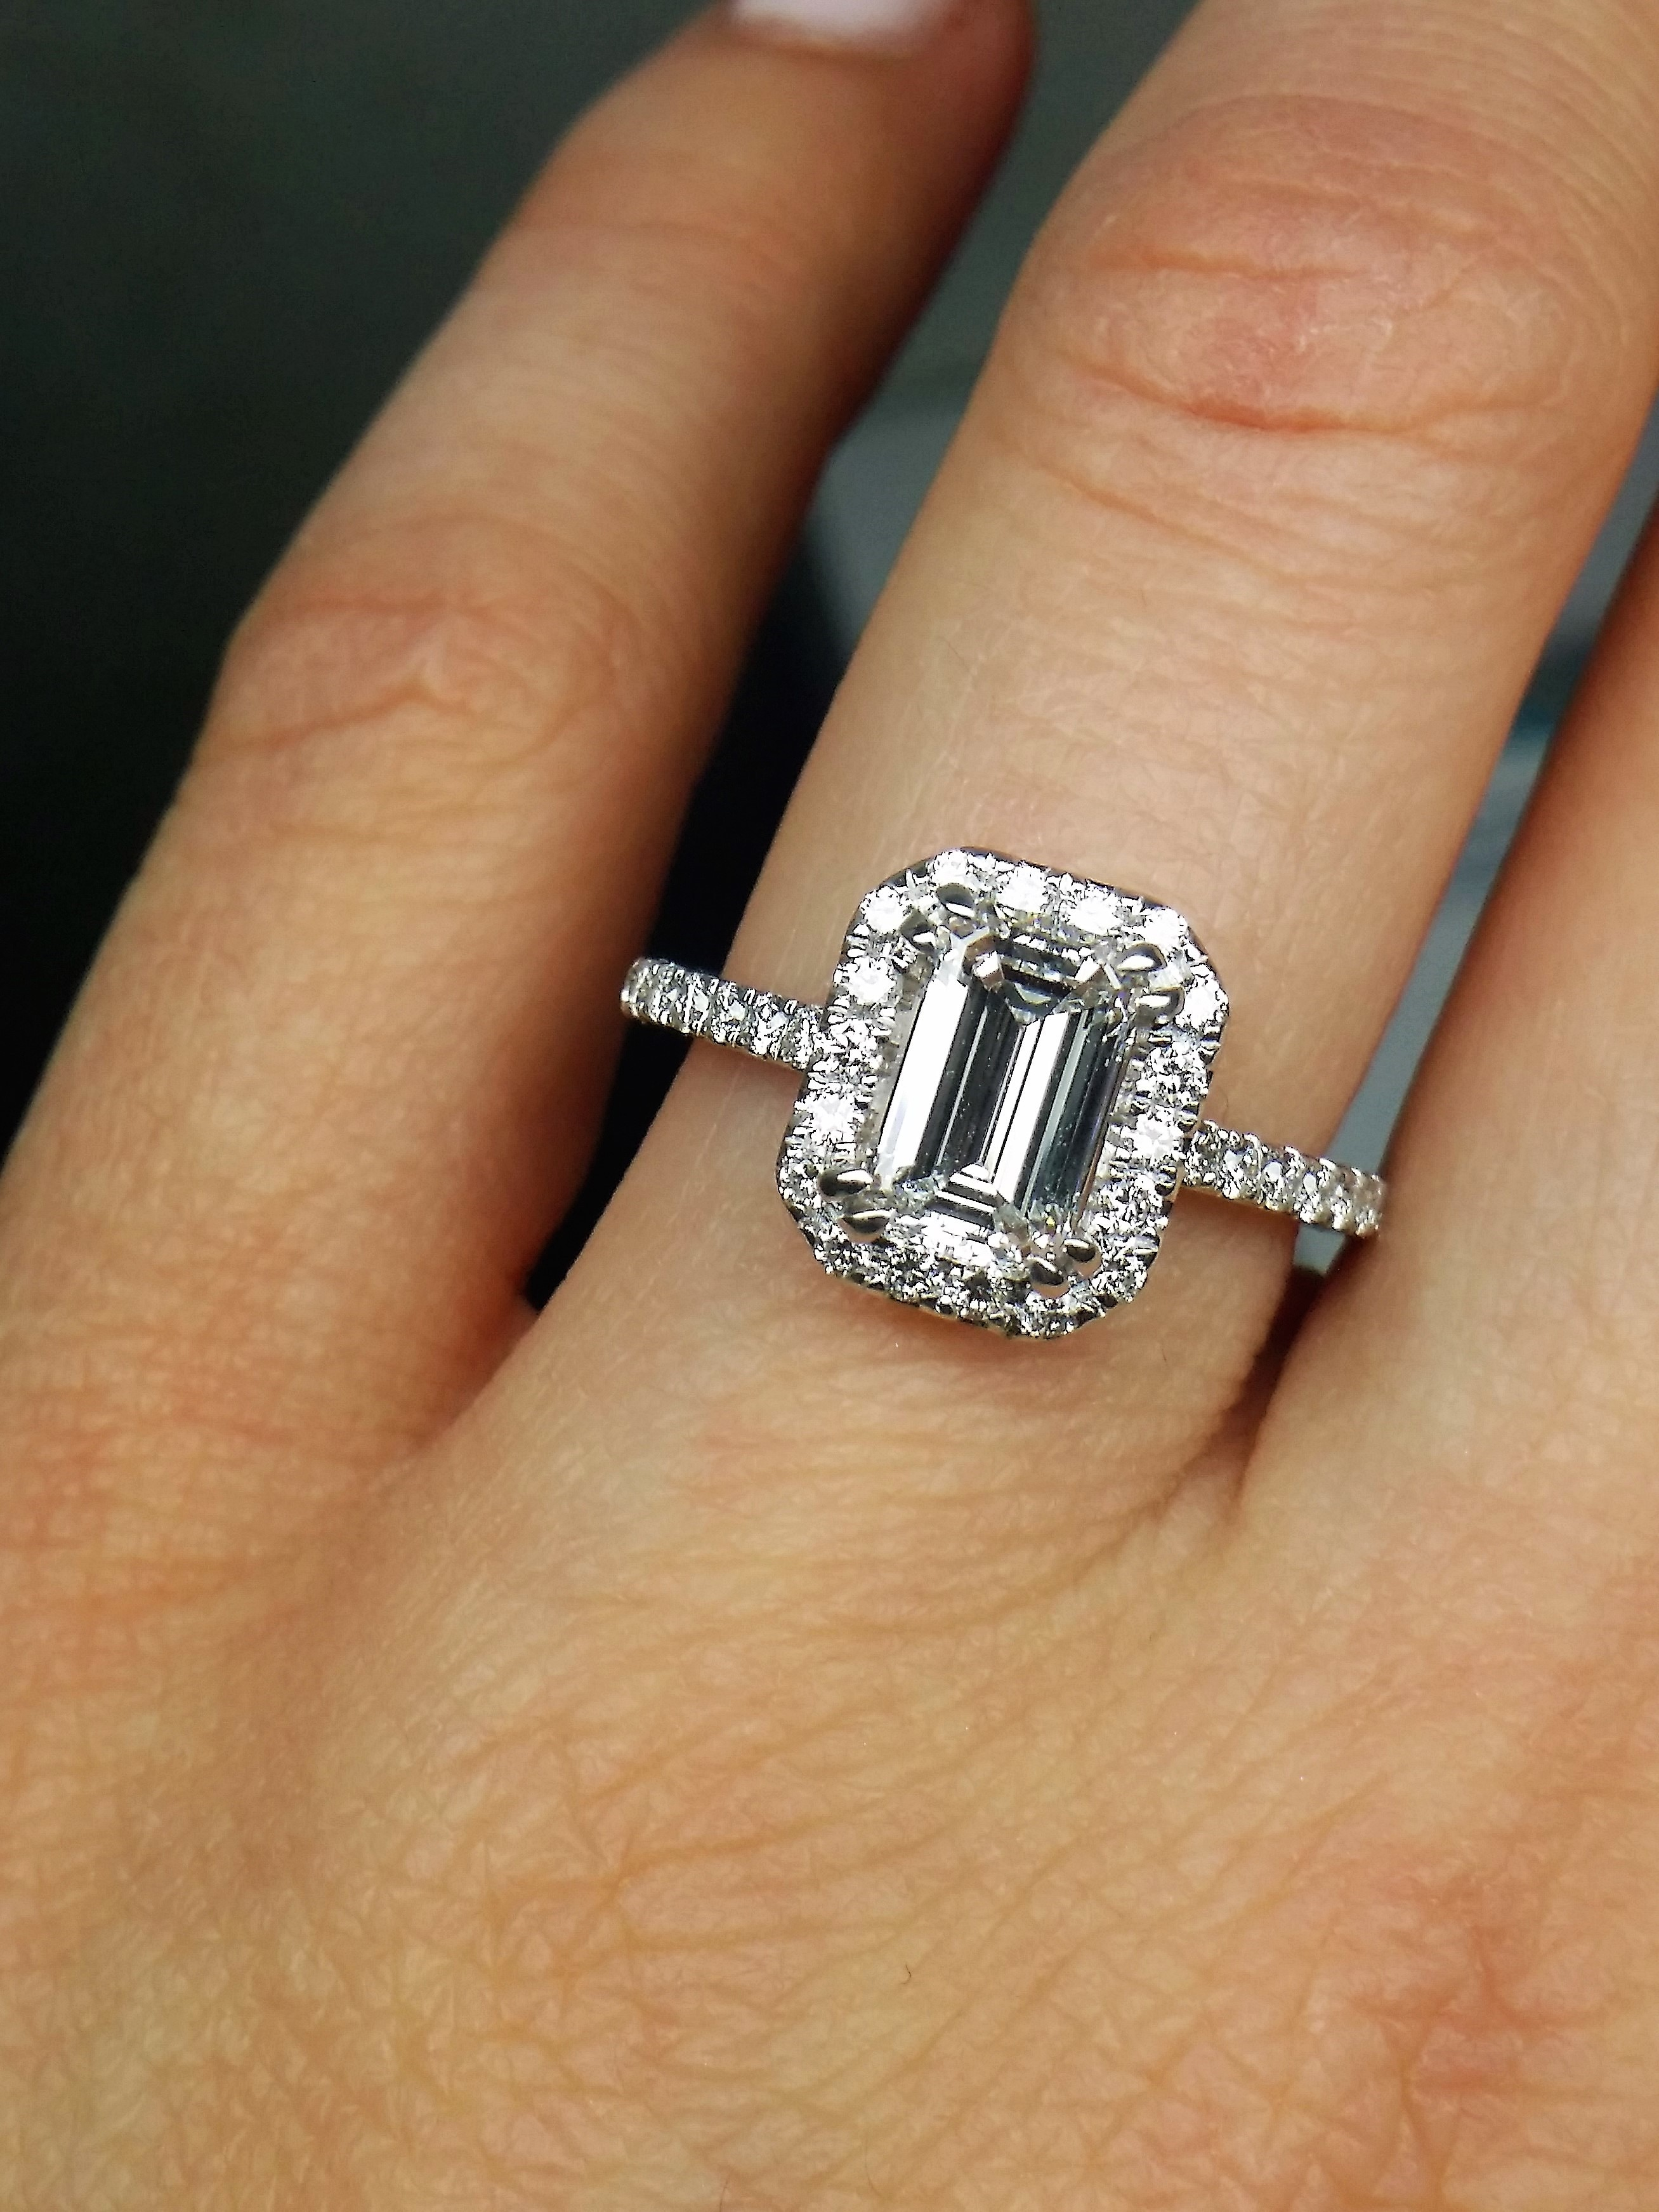 Outstanding Handcrafted GIA 1.82ct Preowned Diamond Engagement Ring